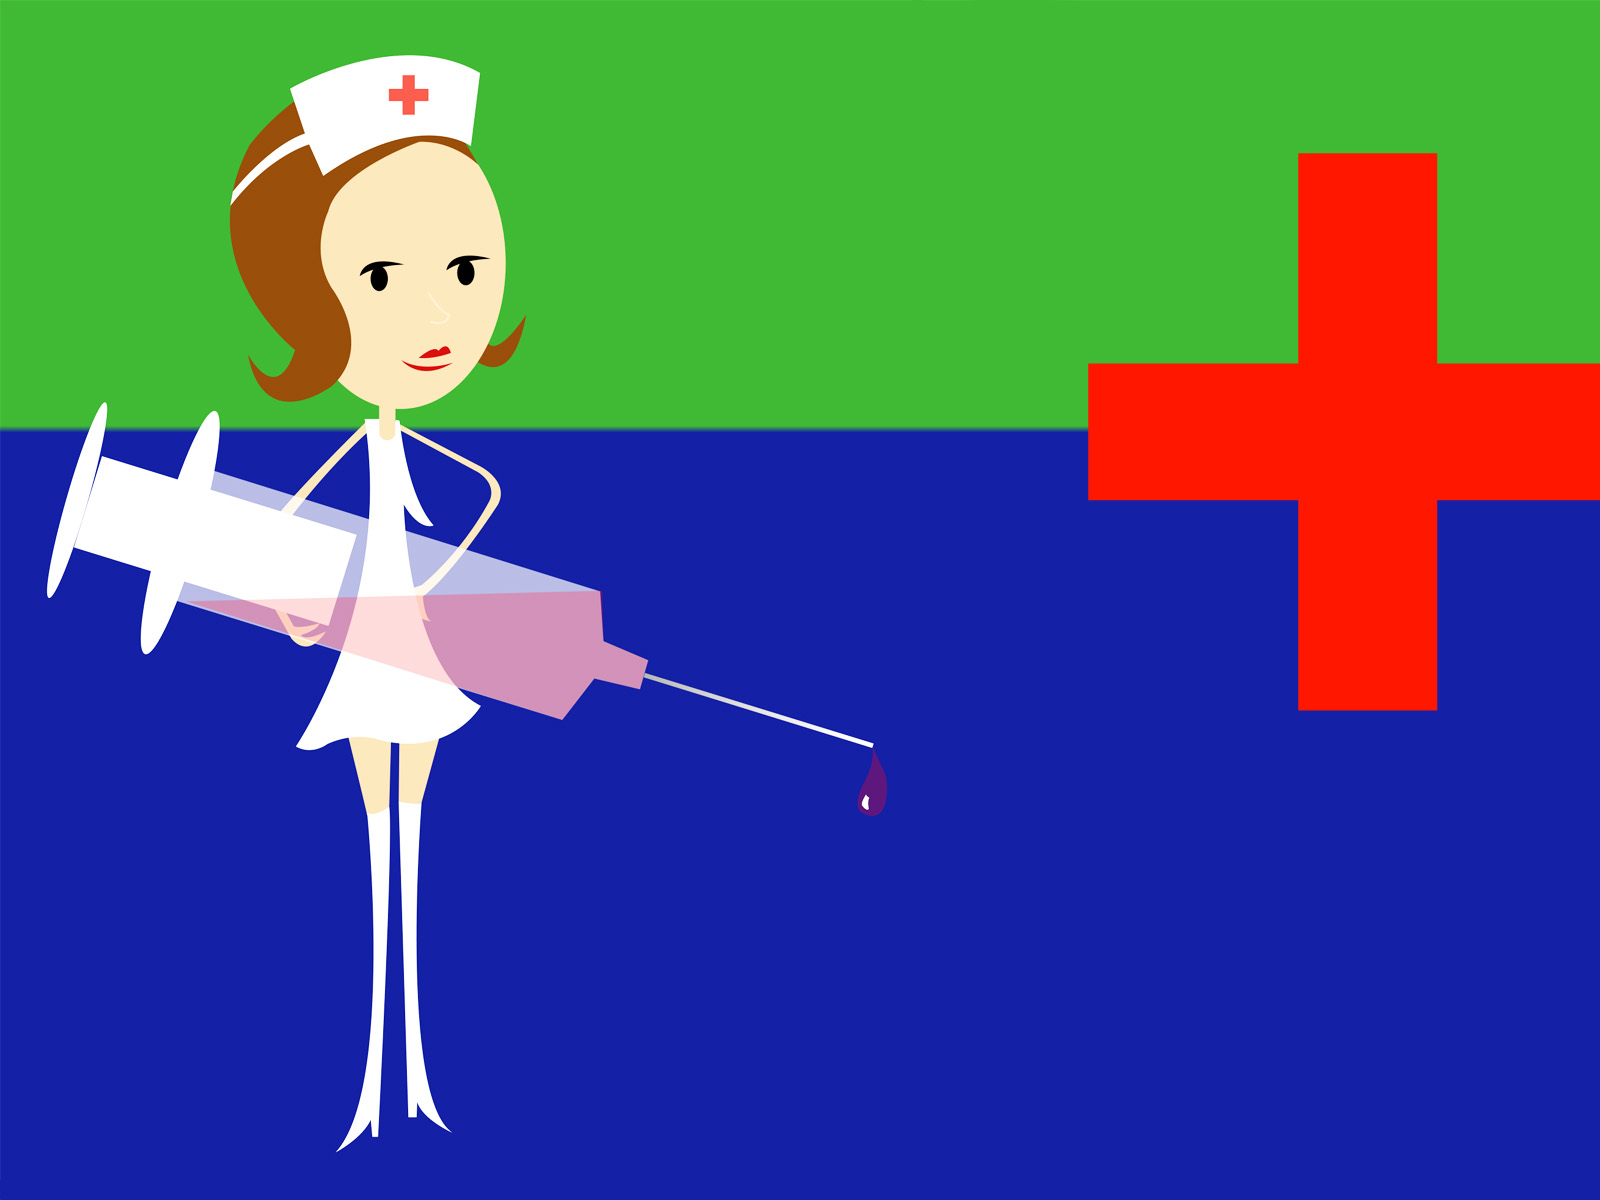 Free Nurse Slides Backgrounds Medical Templates PPT Grounds [ ] for your